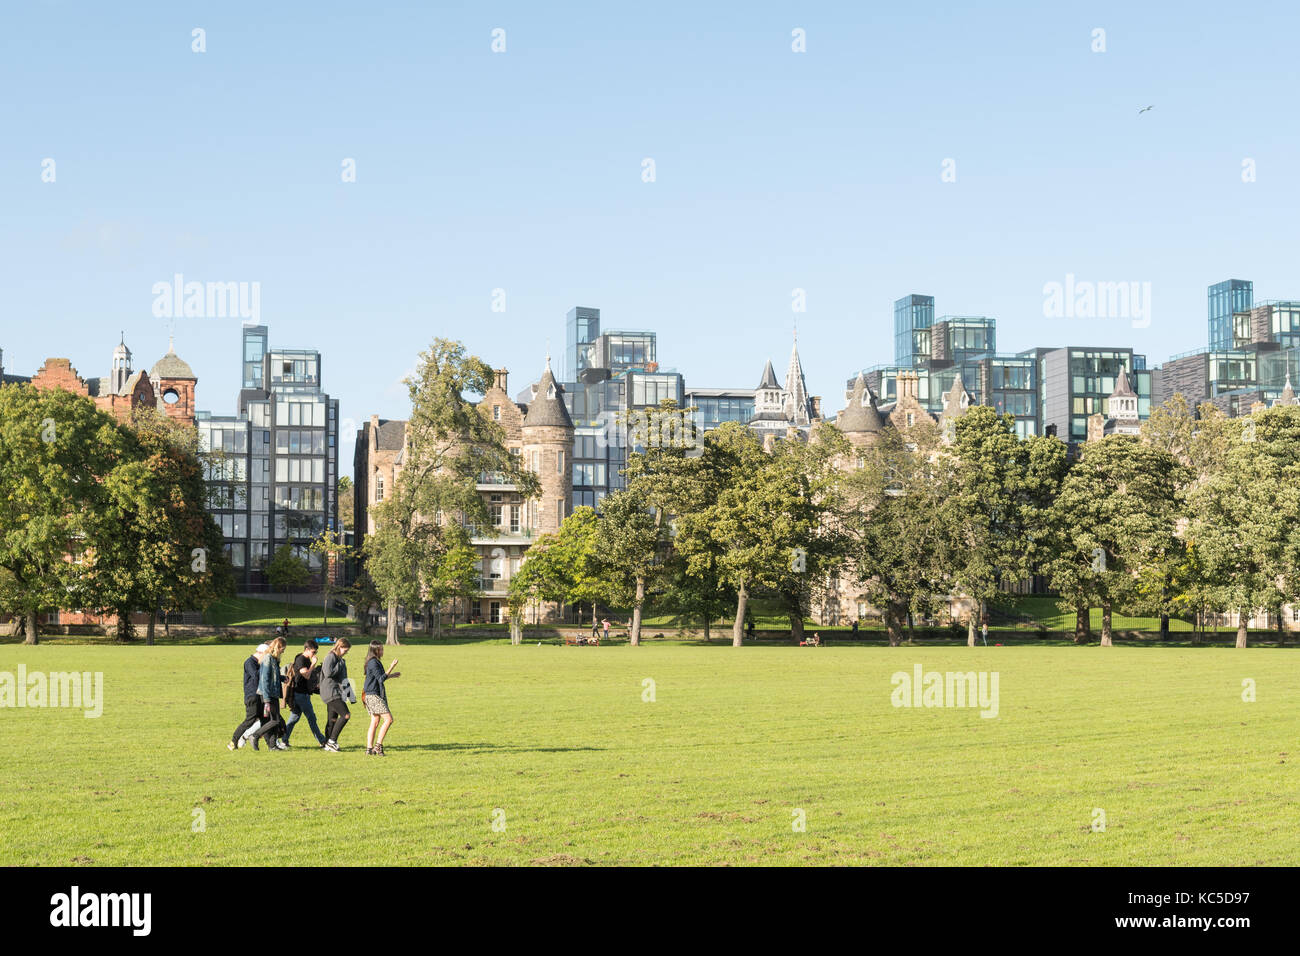 Edinburgh luxury housing - Quartermile development overlooking The Meadows park, Edinburgh, Scotland, UK - Stock Image